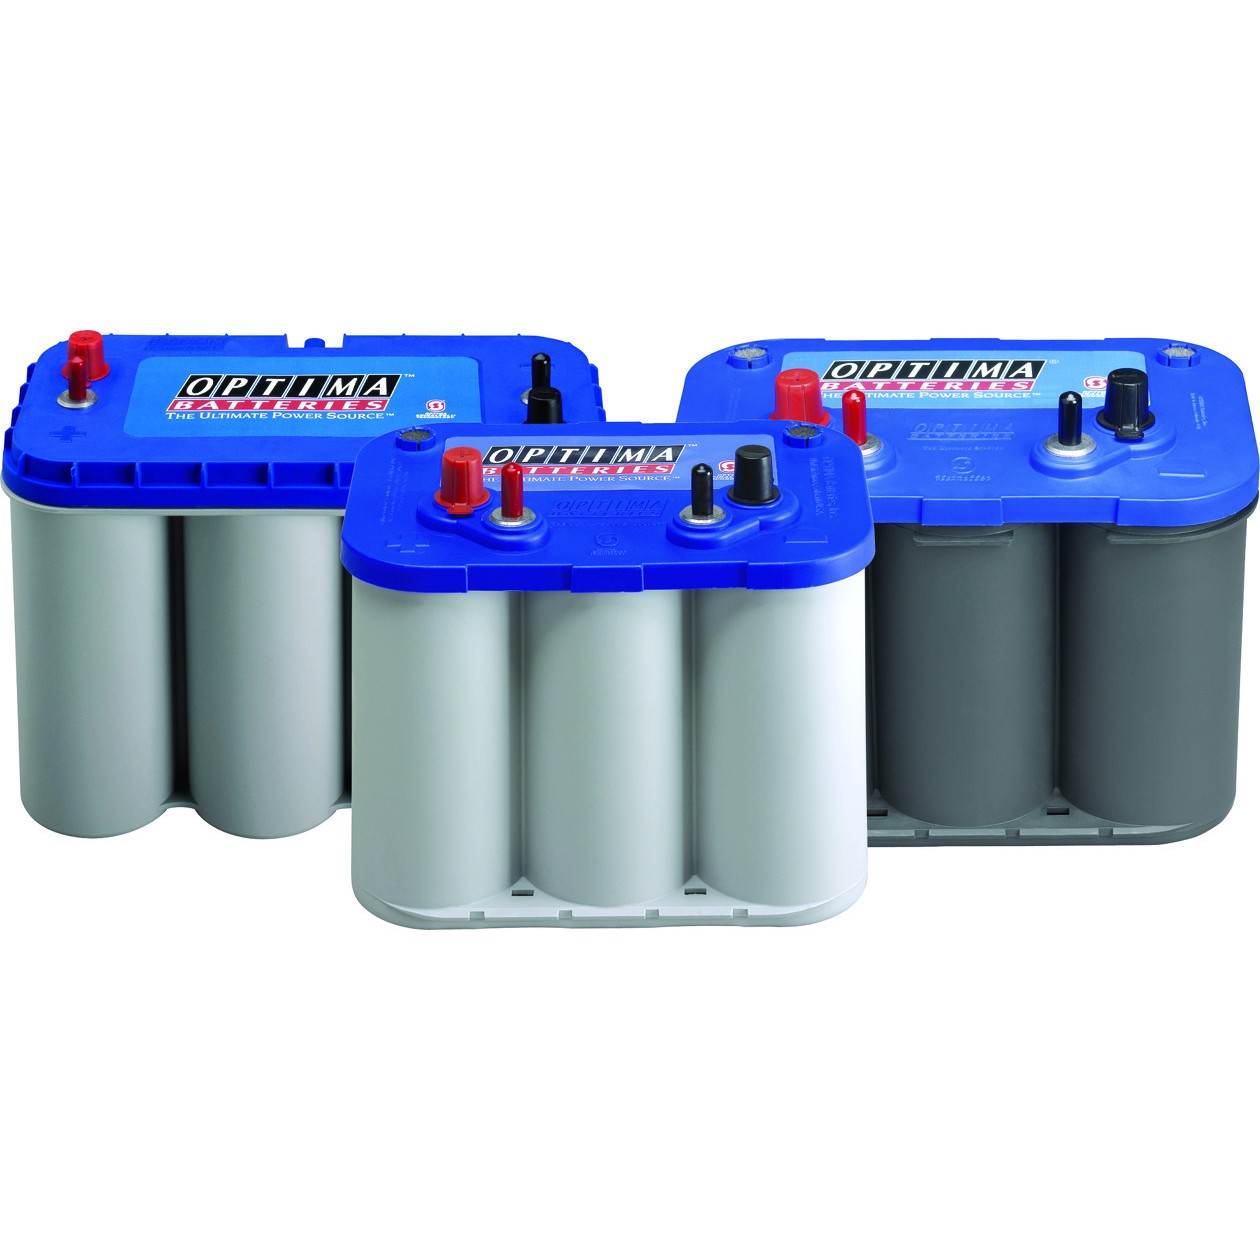 Click image for larger version  Name:optima-bluetop-starting-deep-cycle-batteries_2790341C_5.jpg Views:71 Size:144.9 KB ID:41541